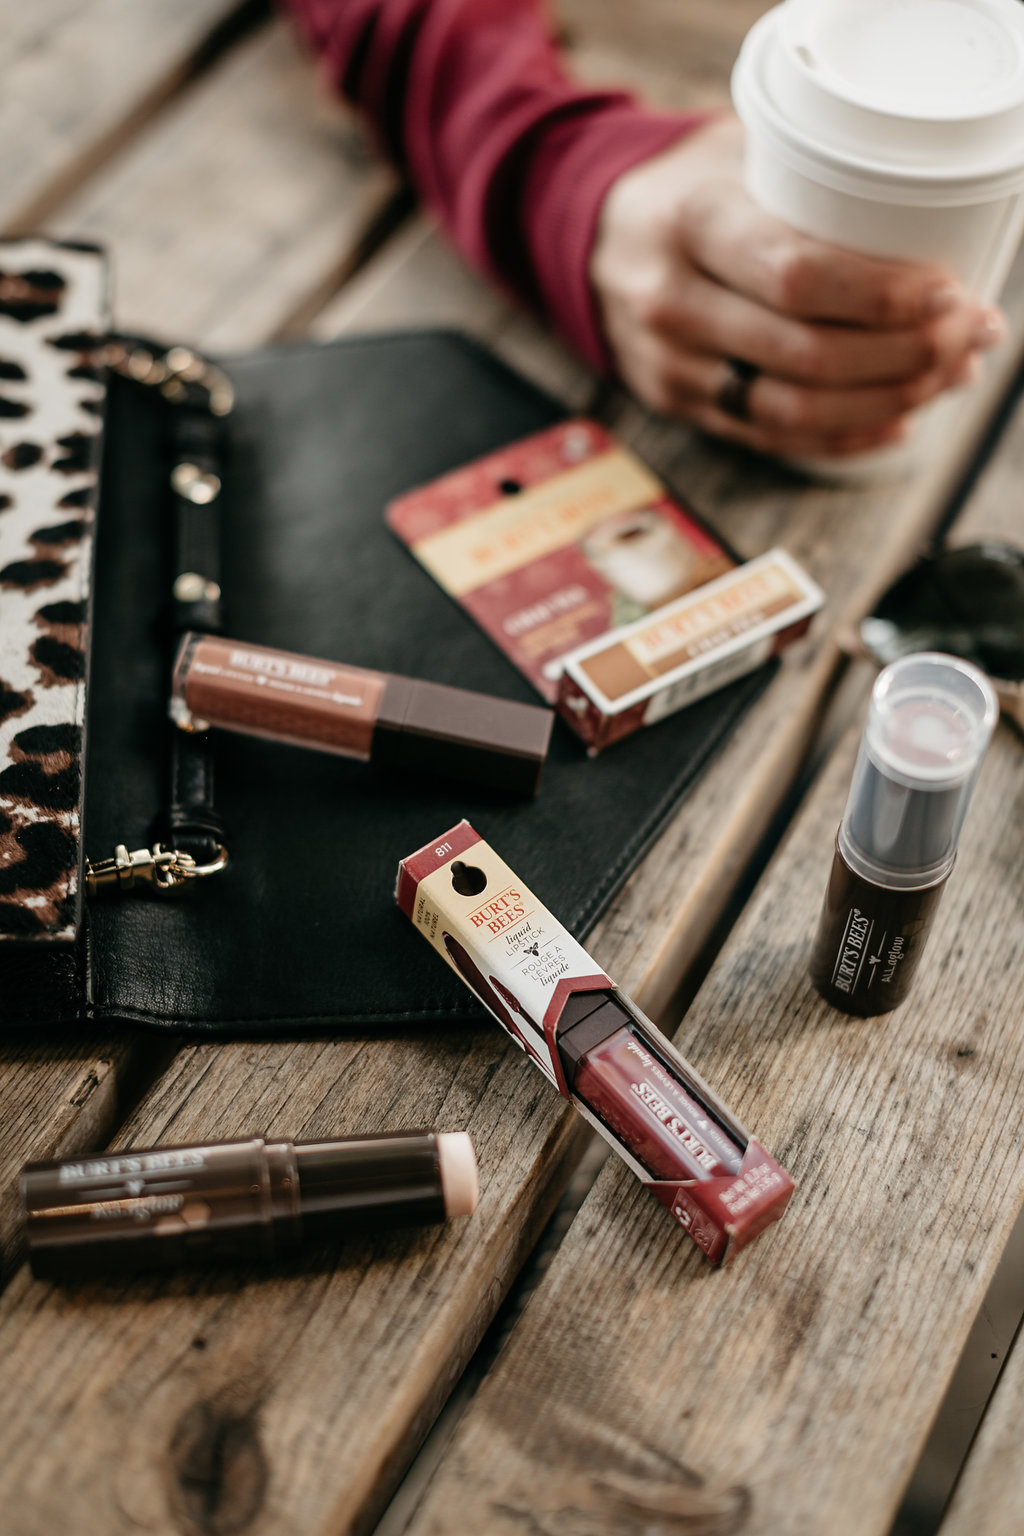 EASY FALL BEAUTY WITH BURTS BEES